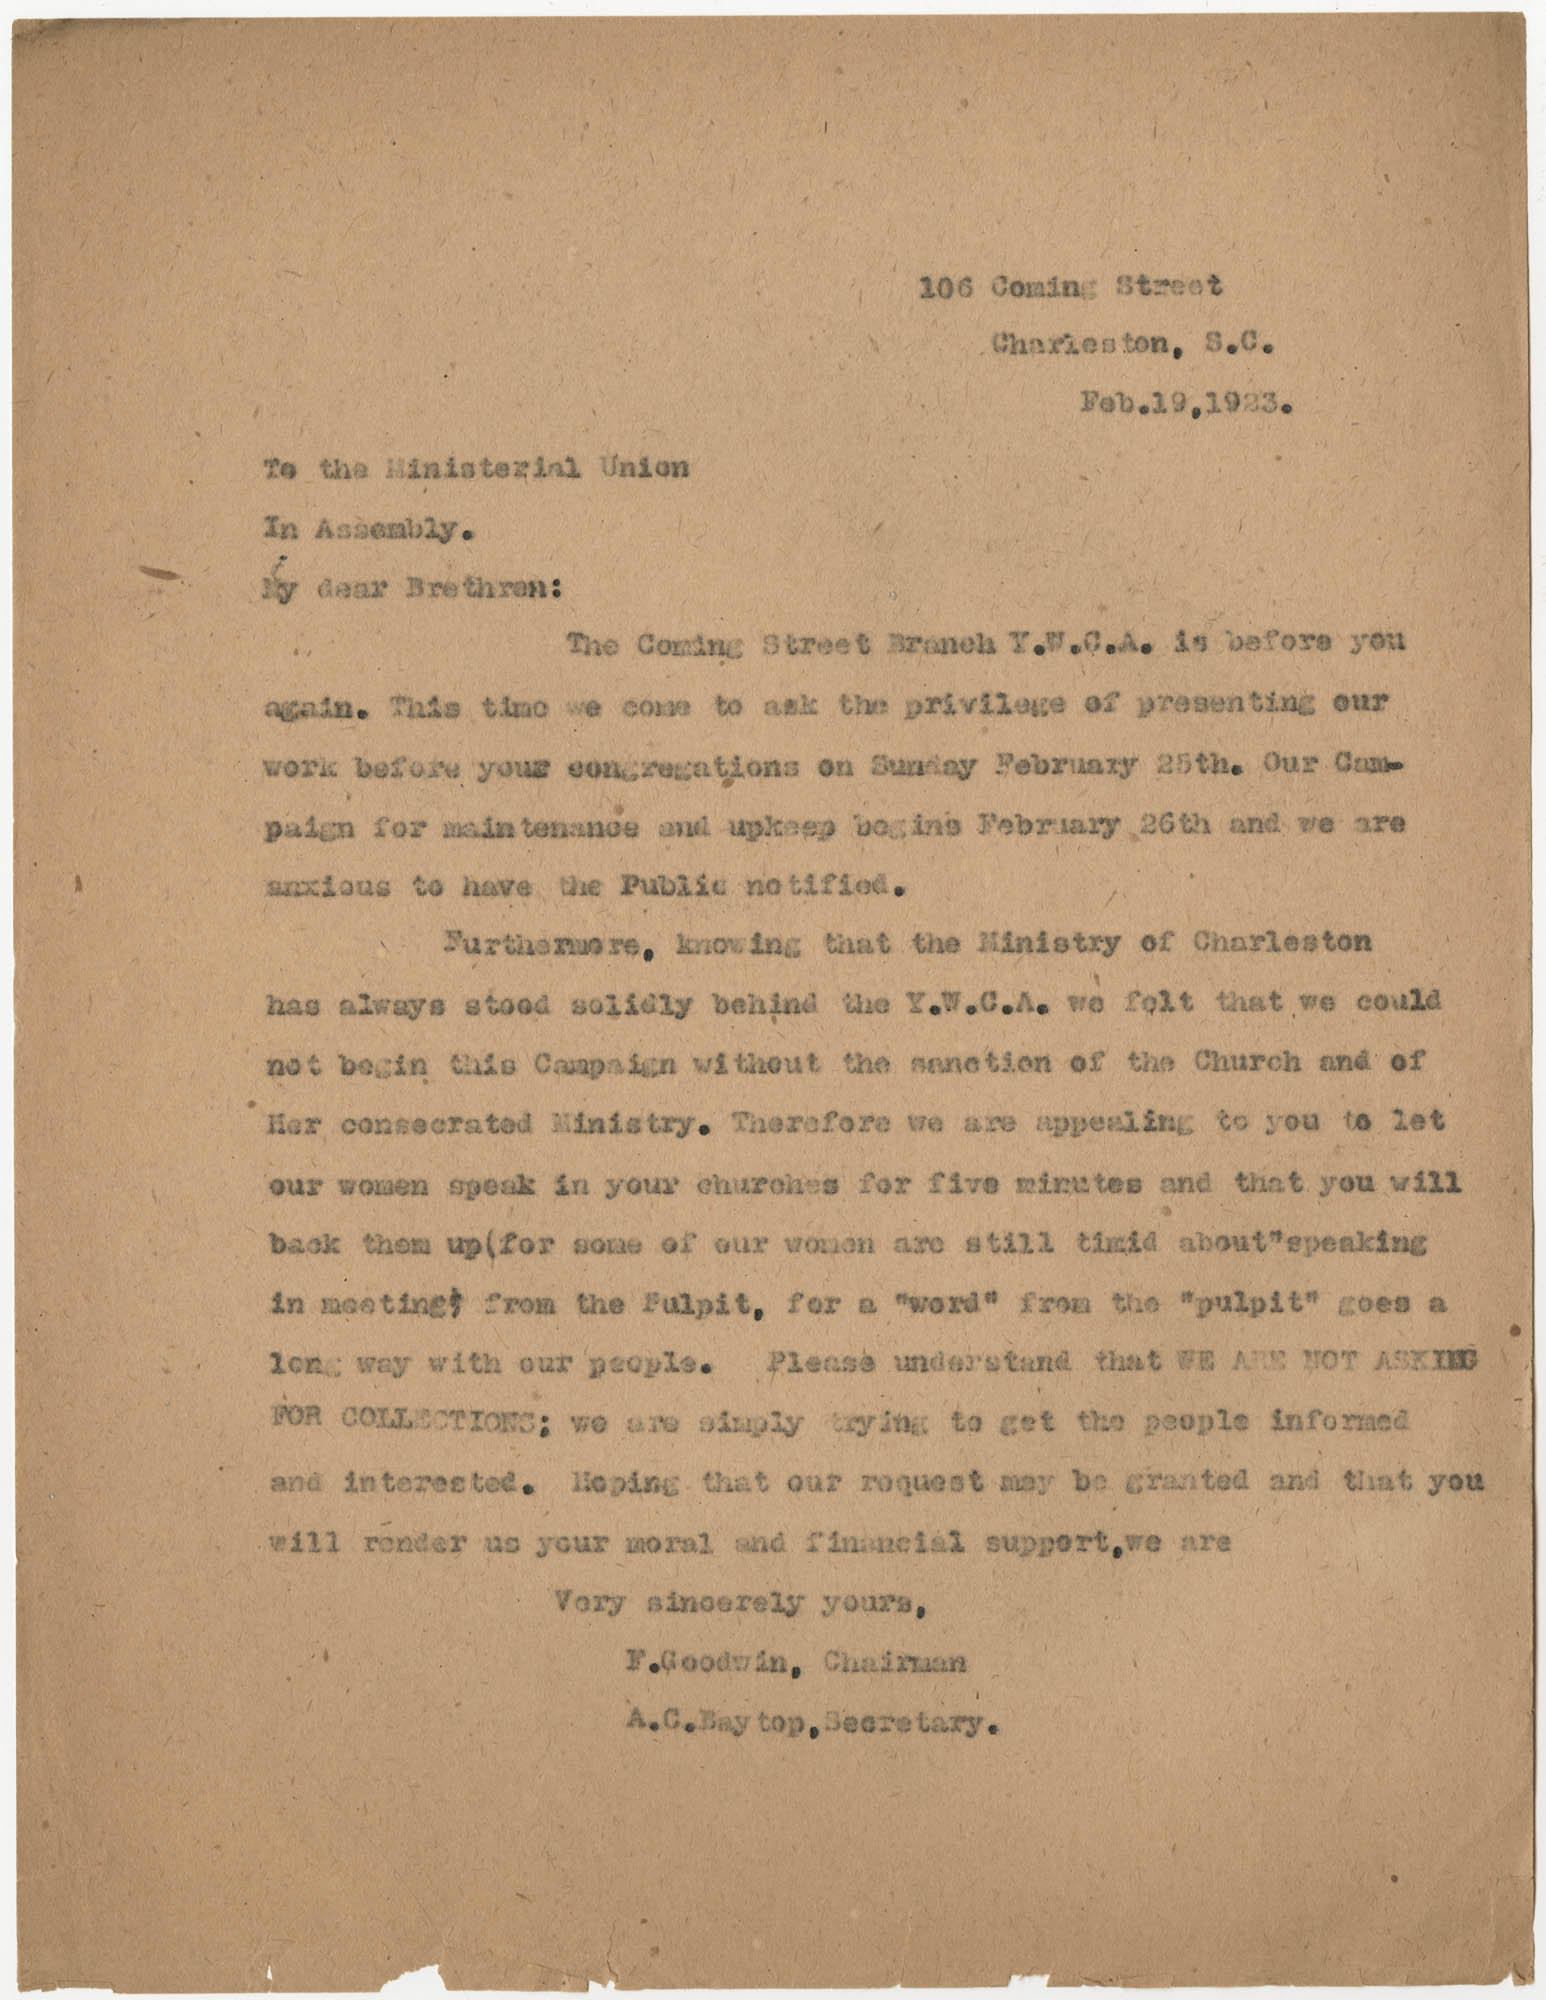 Letter from Felicia Goodwin and Ada C. Baytop to the Ministerial Union, February 19, 1923